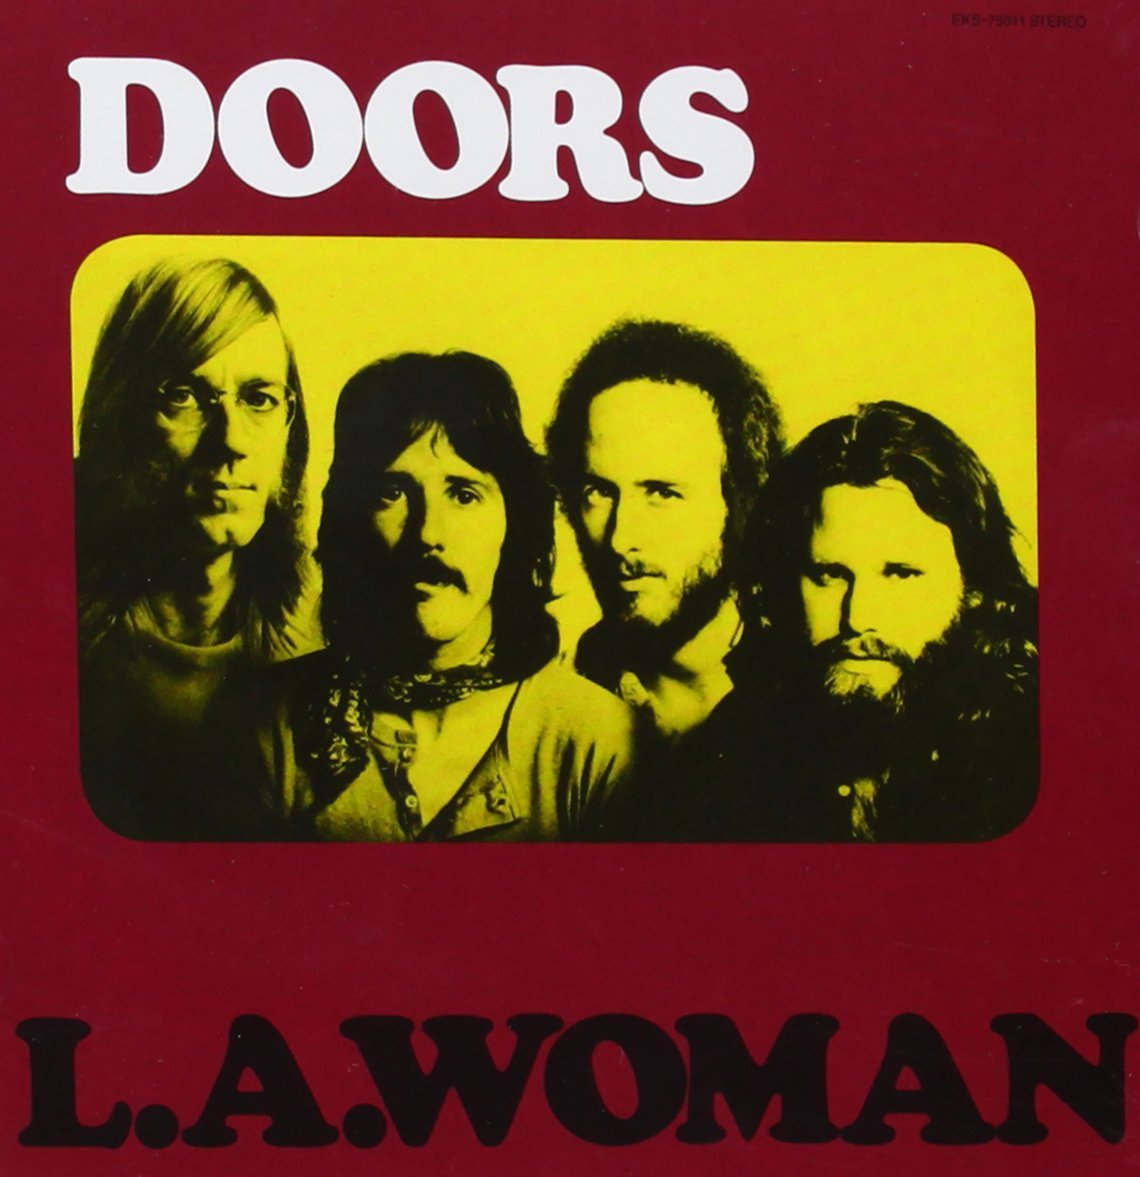 The Doors, L.A. Woman